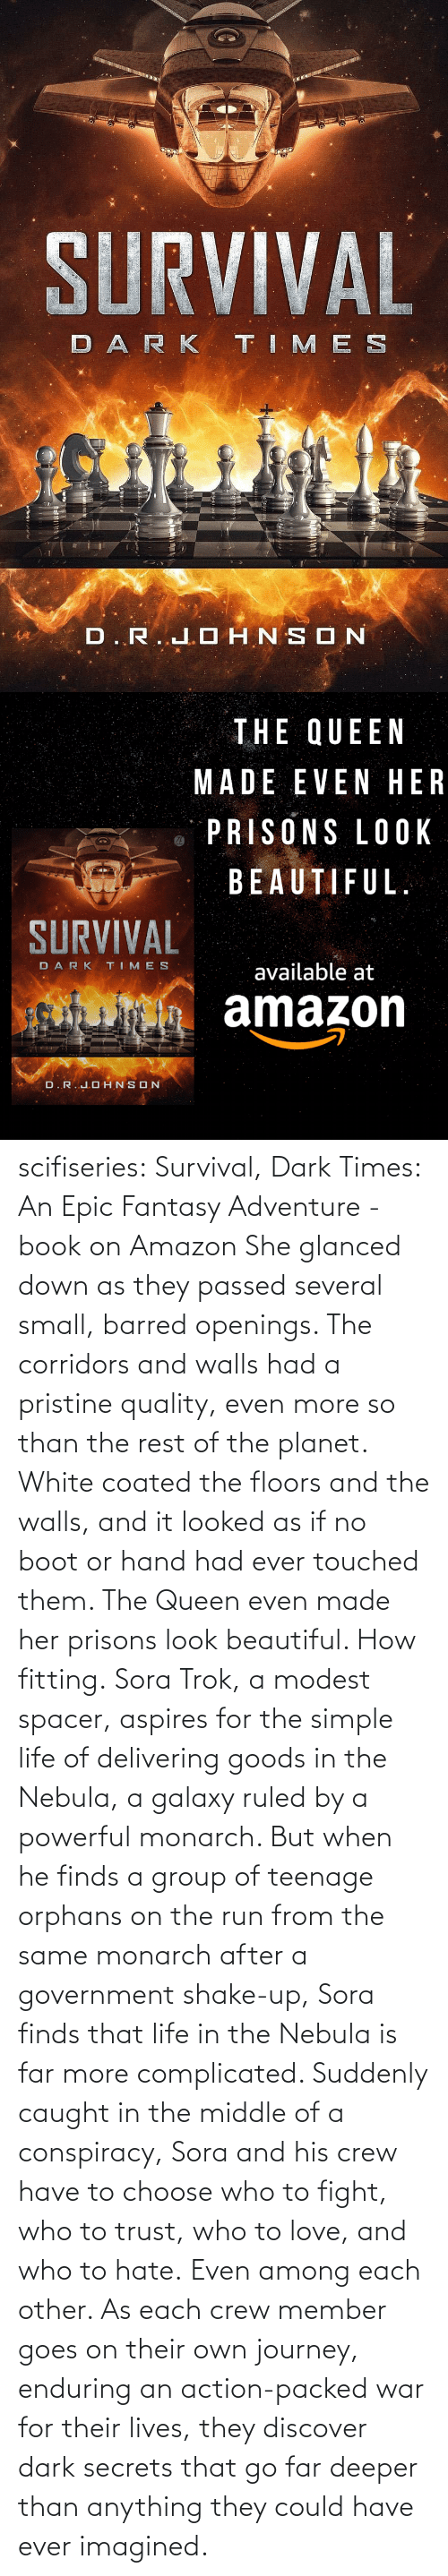 Life: scifiseries: Survival, Dark Times: An Epic Fantasy Adventure - book on Amazon  She glanced down as they  passed several small, barred openings. The corridors and walls had a  pristine quality, even more so than the rest of the planet. White coated  the floors and the walls, and it looked as if no boot or hand had ever  touched them.  The Queen even made her prisons look beautiful.  How fitting. Sora  Trok, a modest spacer, aspires for the simple life of delivering goods  in the Nebula, a galaxy ruled by a powerful monarch. But when he finds a  group of teenage orphans on the run from the same monarch after a  government shake-up, Sora finds that life in the Nebula is far more complicated.  Suddenly  caught in the middle of a conspiracy, Sora and his crew have to choose  who to fight, who to trust, who to love, and who to hate. Even among each other.  As  each crew member goes on their own journey, enduring an action-packed  war for their lives, they discover dark secrets that go far deeper than  anything they could have ever imagined.